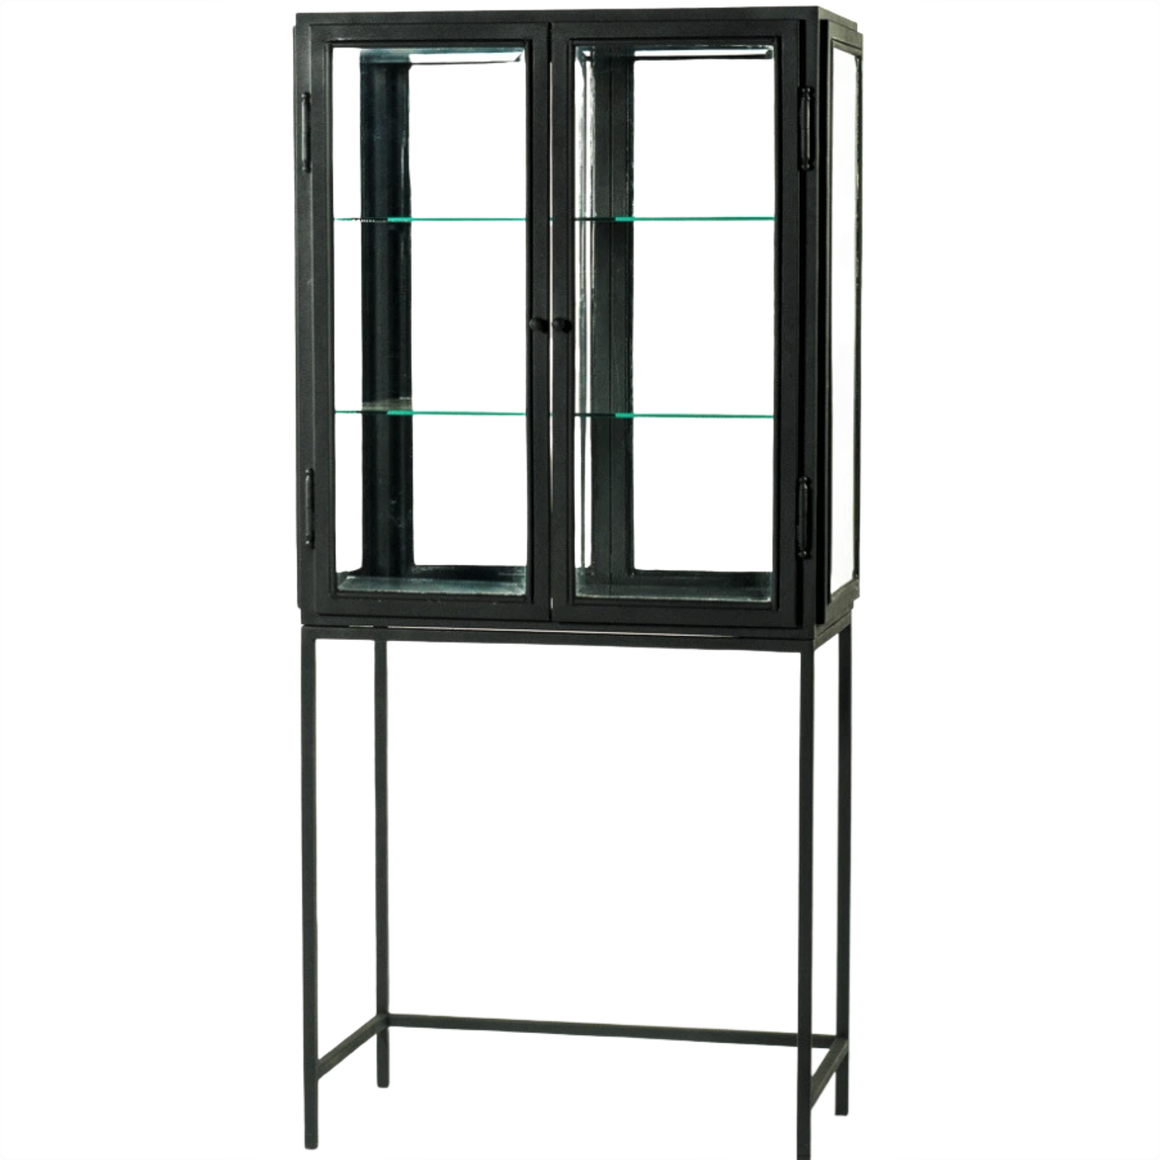 BARCELONA WROUGHT IRON 2 DOOR CABINET